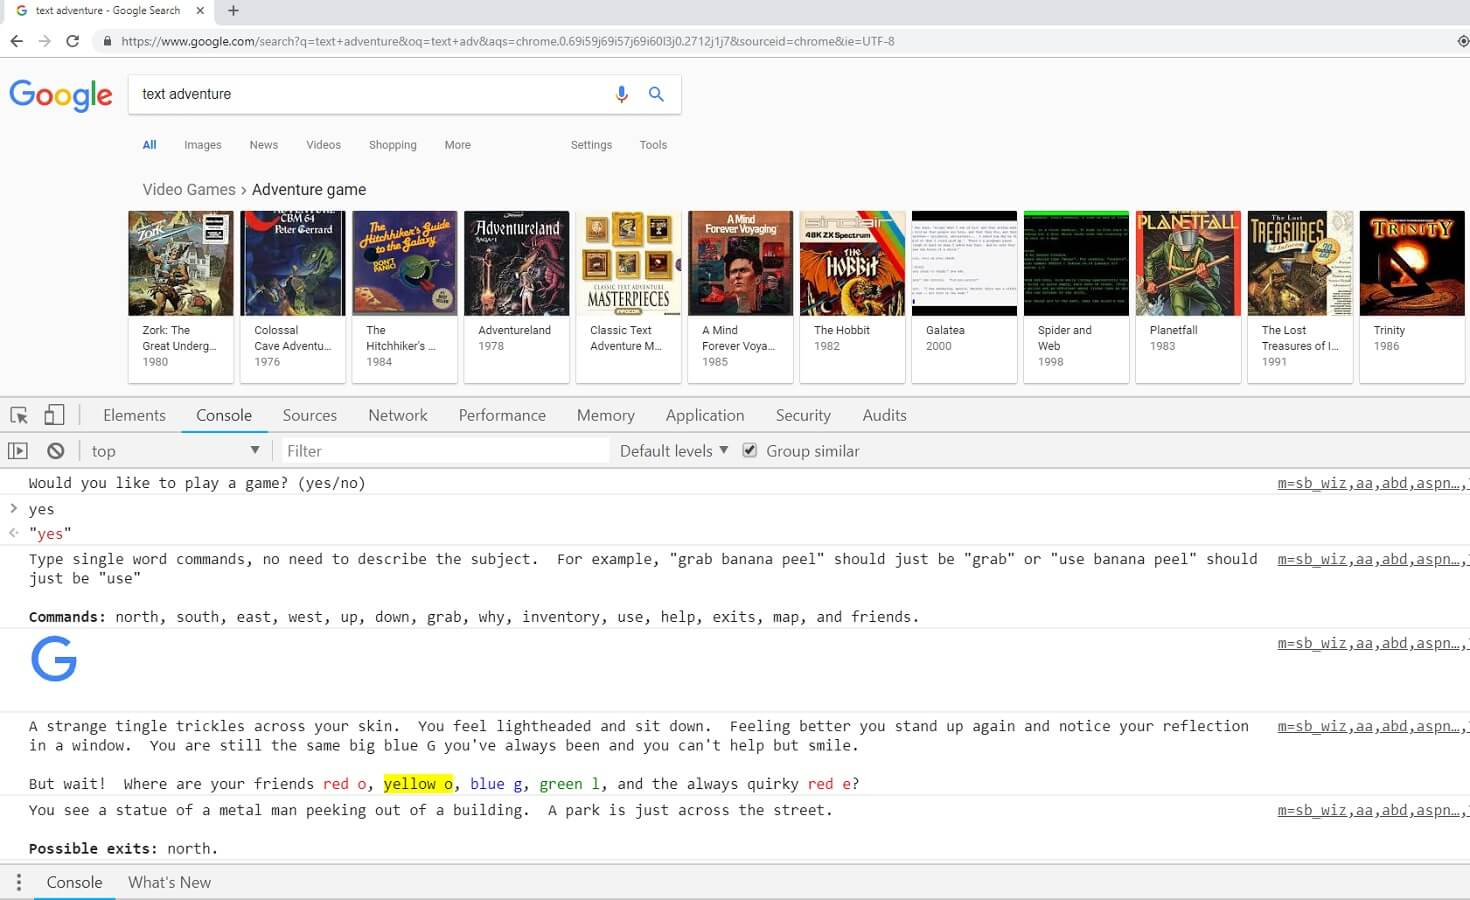 google text adventure game easter egg